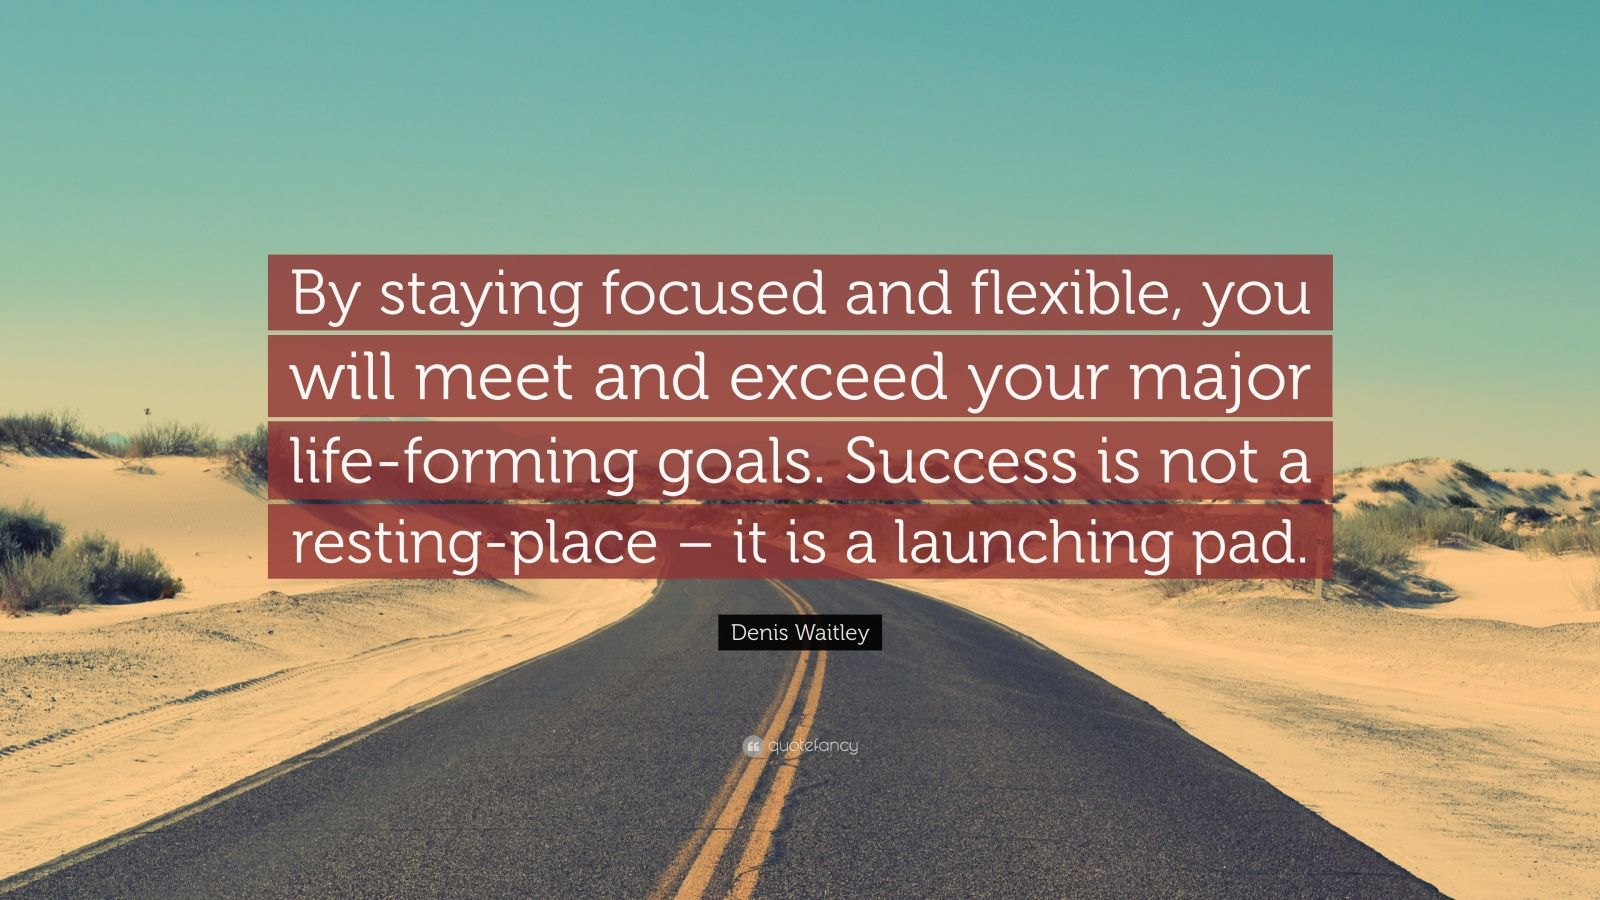 """Denis Waitley Quote: """"By staying focused and flexible, you will meet and exceed your major life-forming goals. Success is not a resting-place – it is a launching pad."""""""